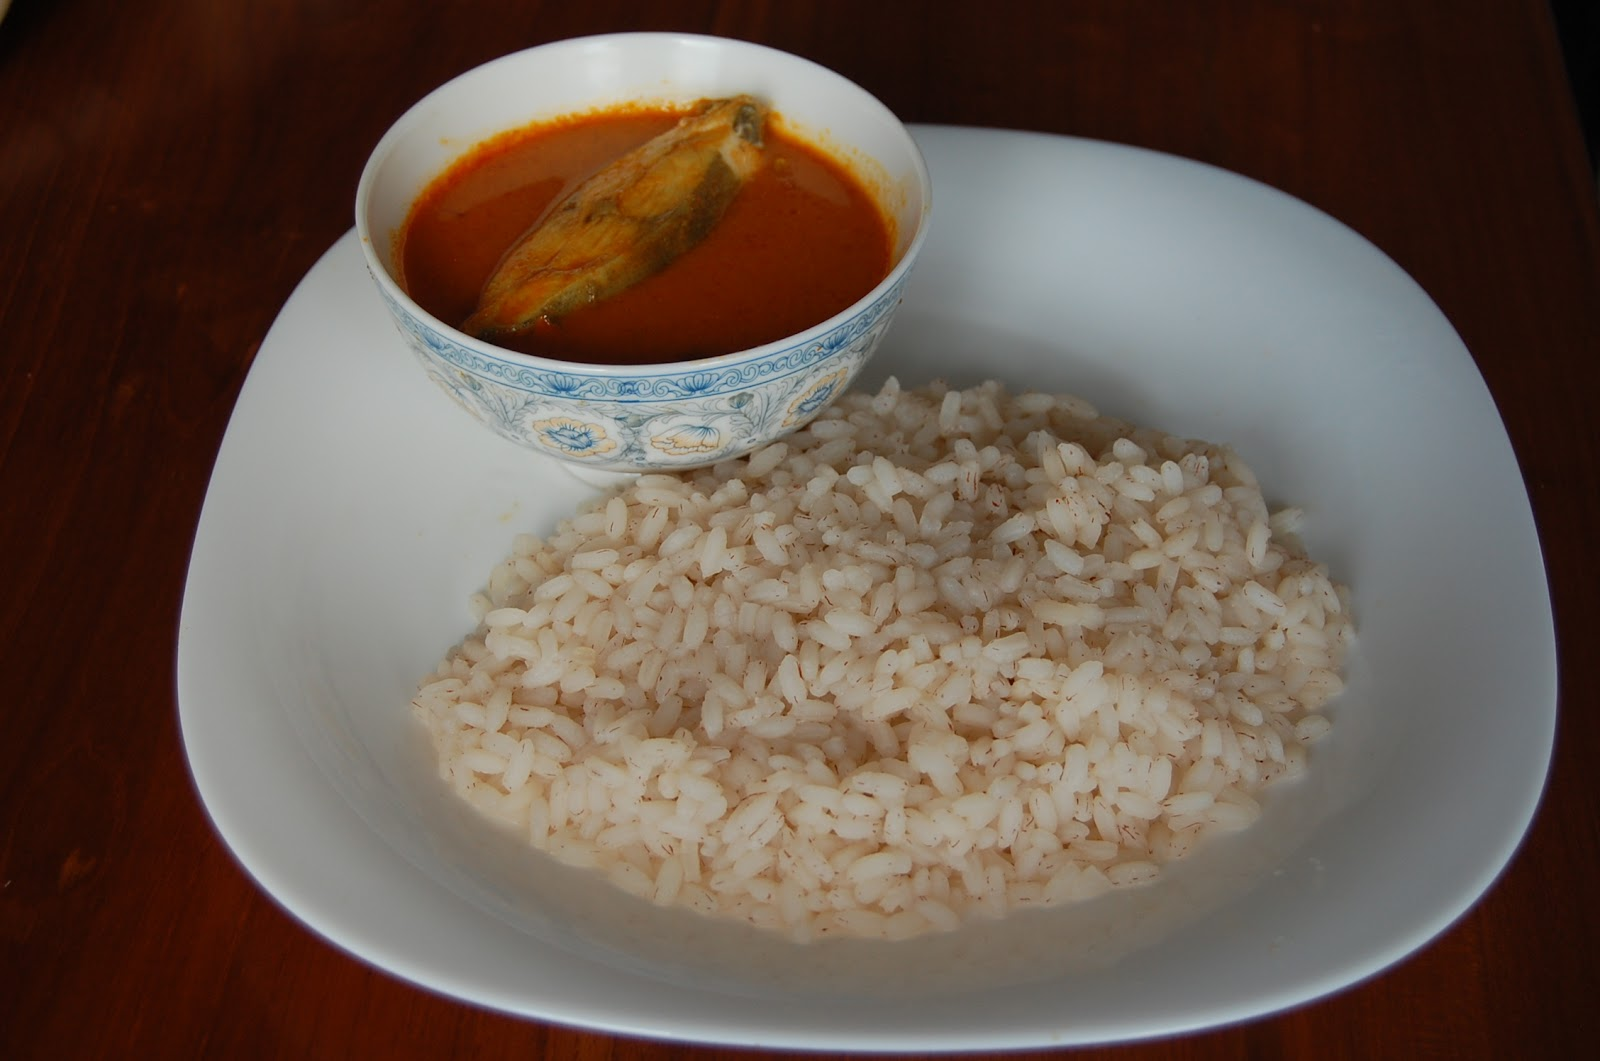 File:Boiled Rice & Fish Curry.JPG - Wikimedia Commons